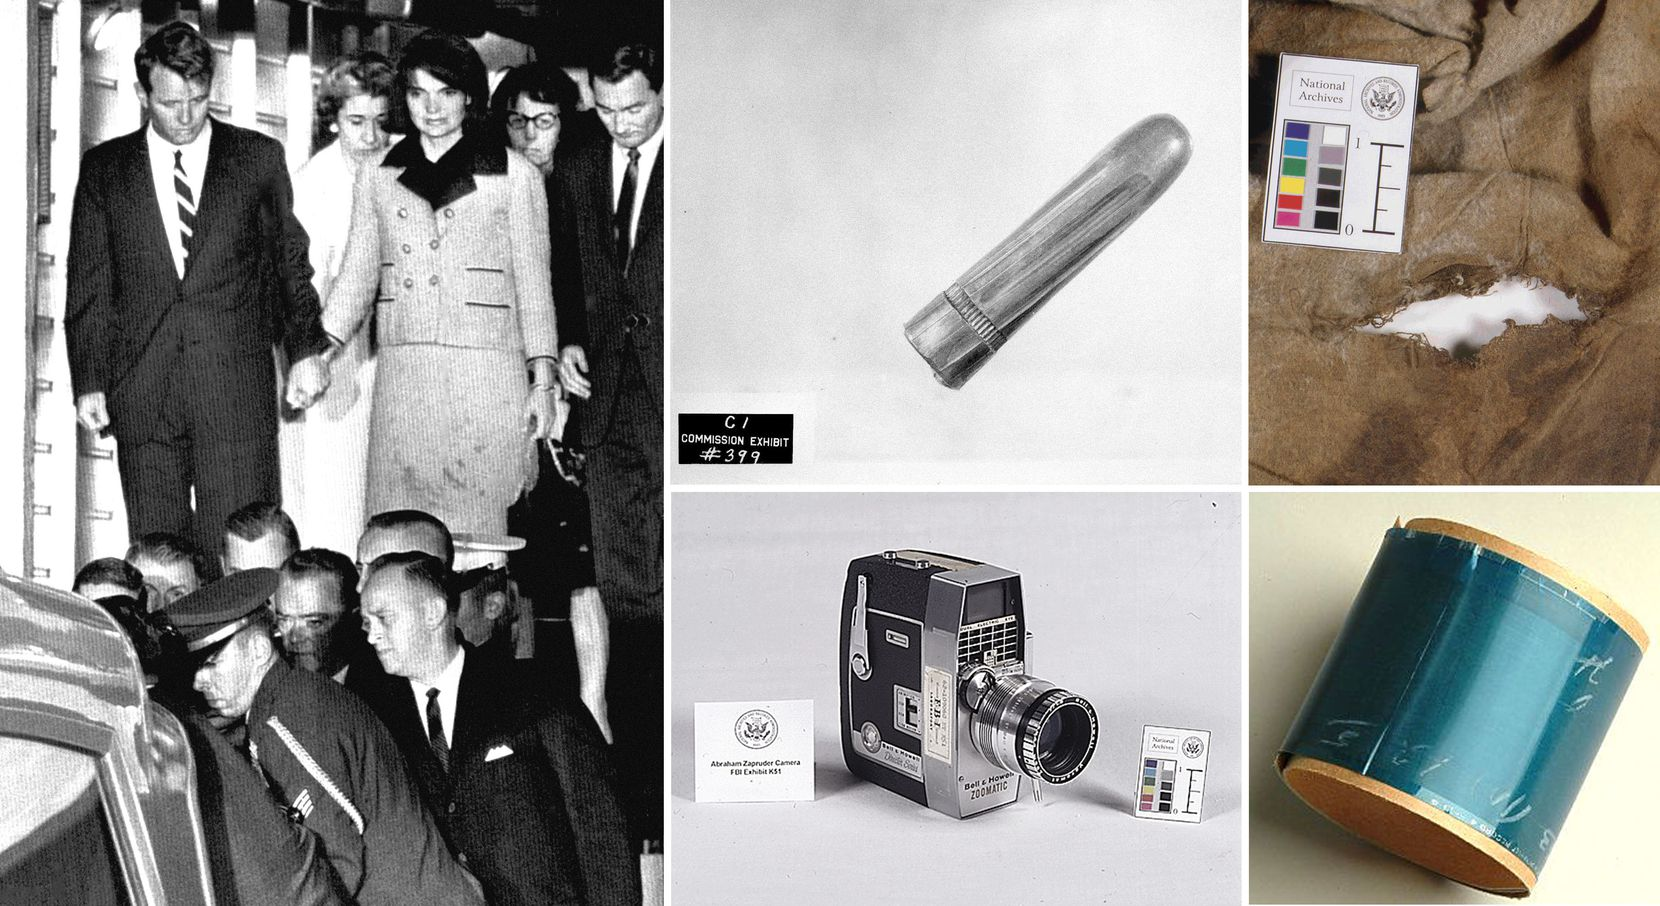 Artifacts from the Kennedy assassination that are preserved in the National Archives include (clockwise from left): The bloodstained outfit Jacqueline Kennedy refused to change out of until her return to Washington; a bullet found on a stretcher at Parkland Memorial Hospital where President Kennedy was taken; a bullet hole in the shirt Lee Harvey Oswald was wearing when he was killed by Jack Ruby; the dictabelt from a Dallas police motorcycle that recorded audio of the assassination; and the movie camera used by Abraham Zapruder when he filmed the moment of Kennedy's death.